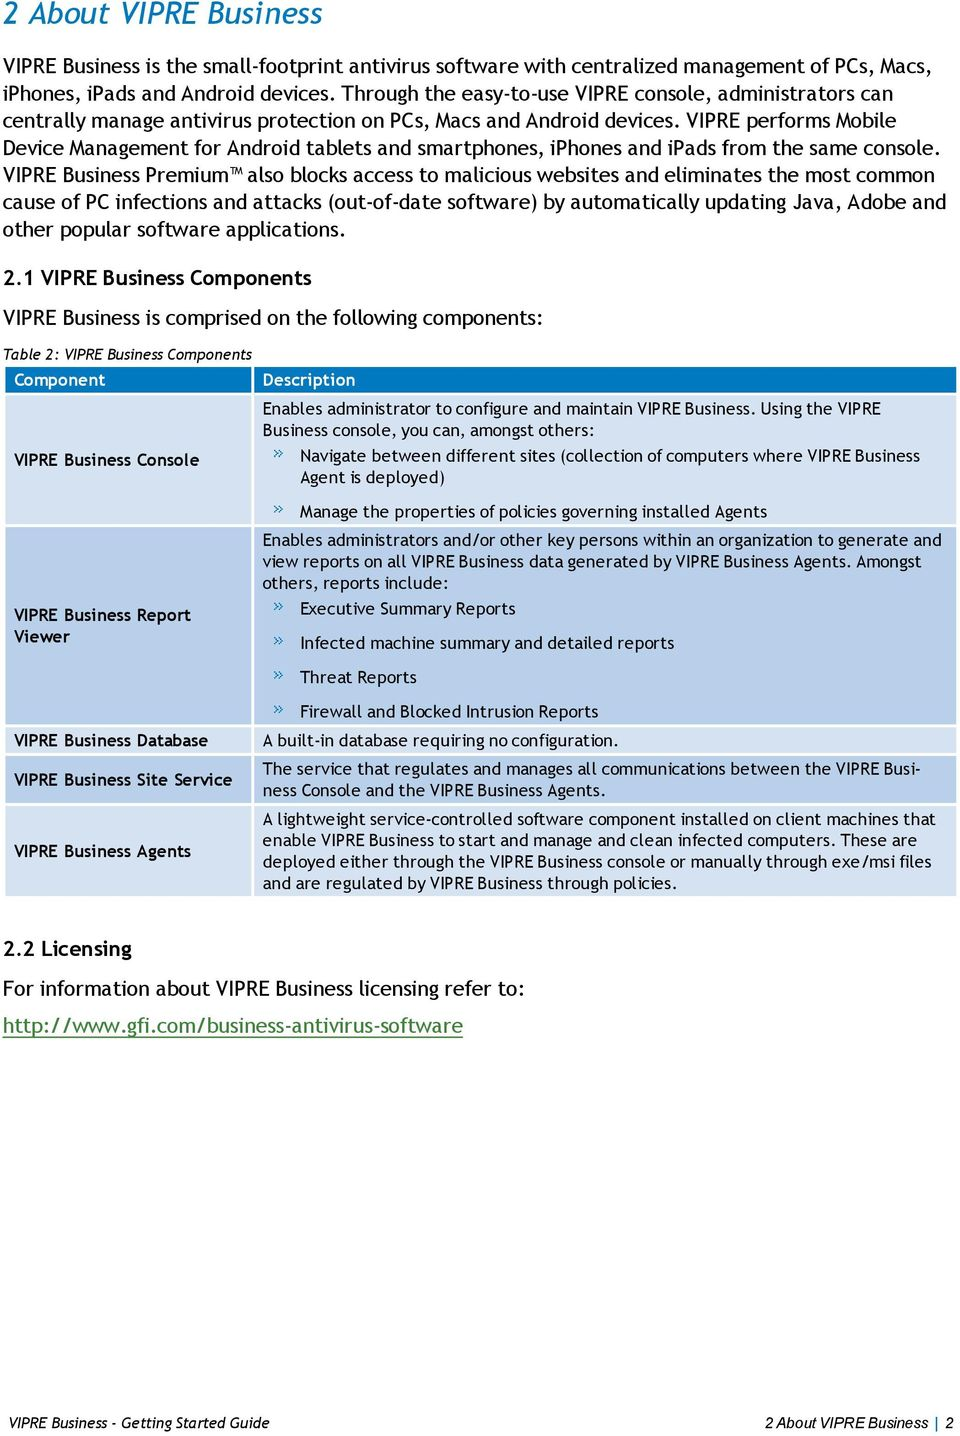 VIPRE performs Mobile Device Management for Android tablets and smartphones, iphones and ipads from the same console.